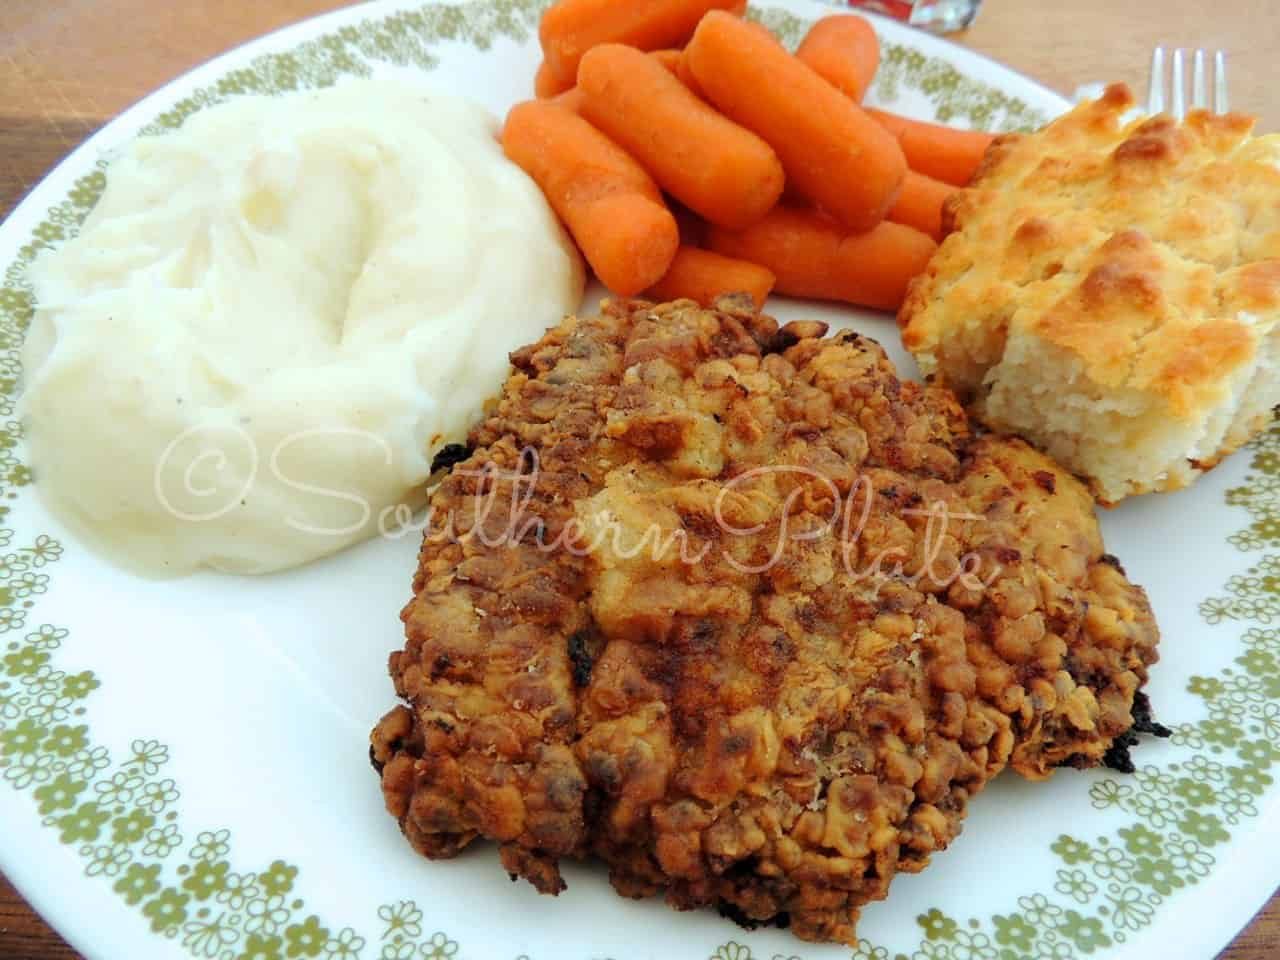 Place Chicken Fried Steak on a plate with some friends!